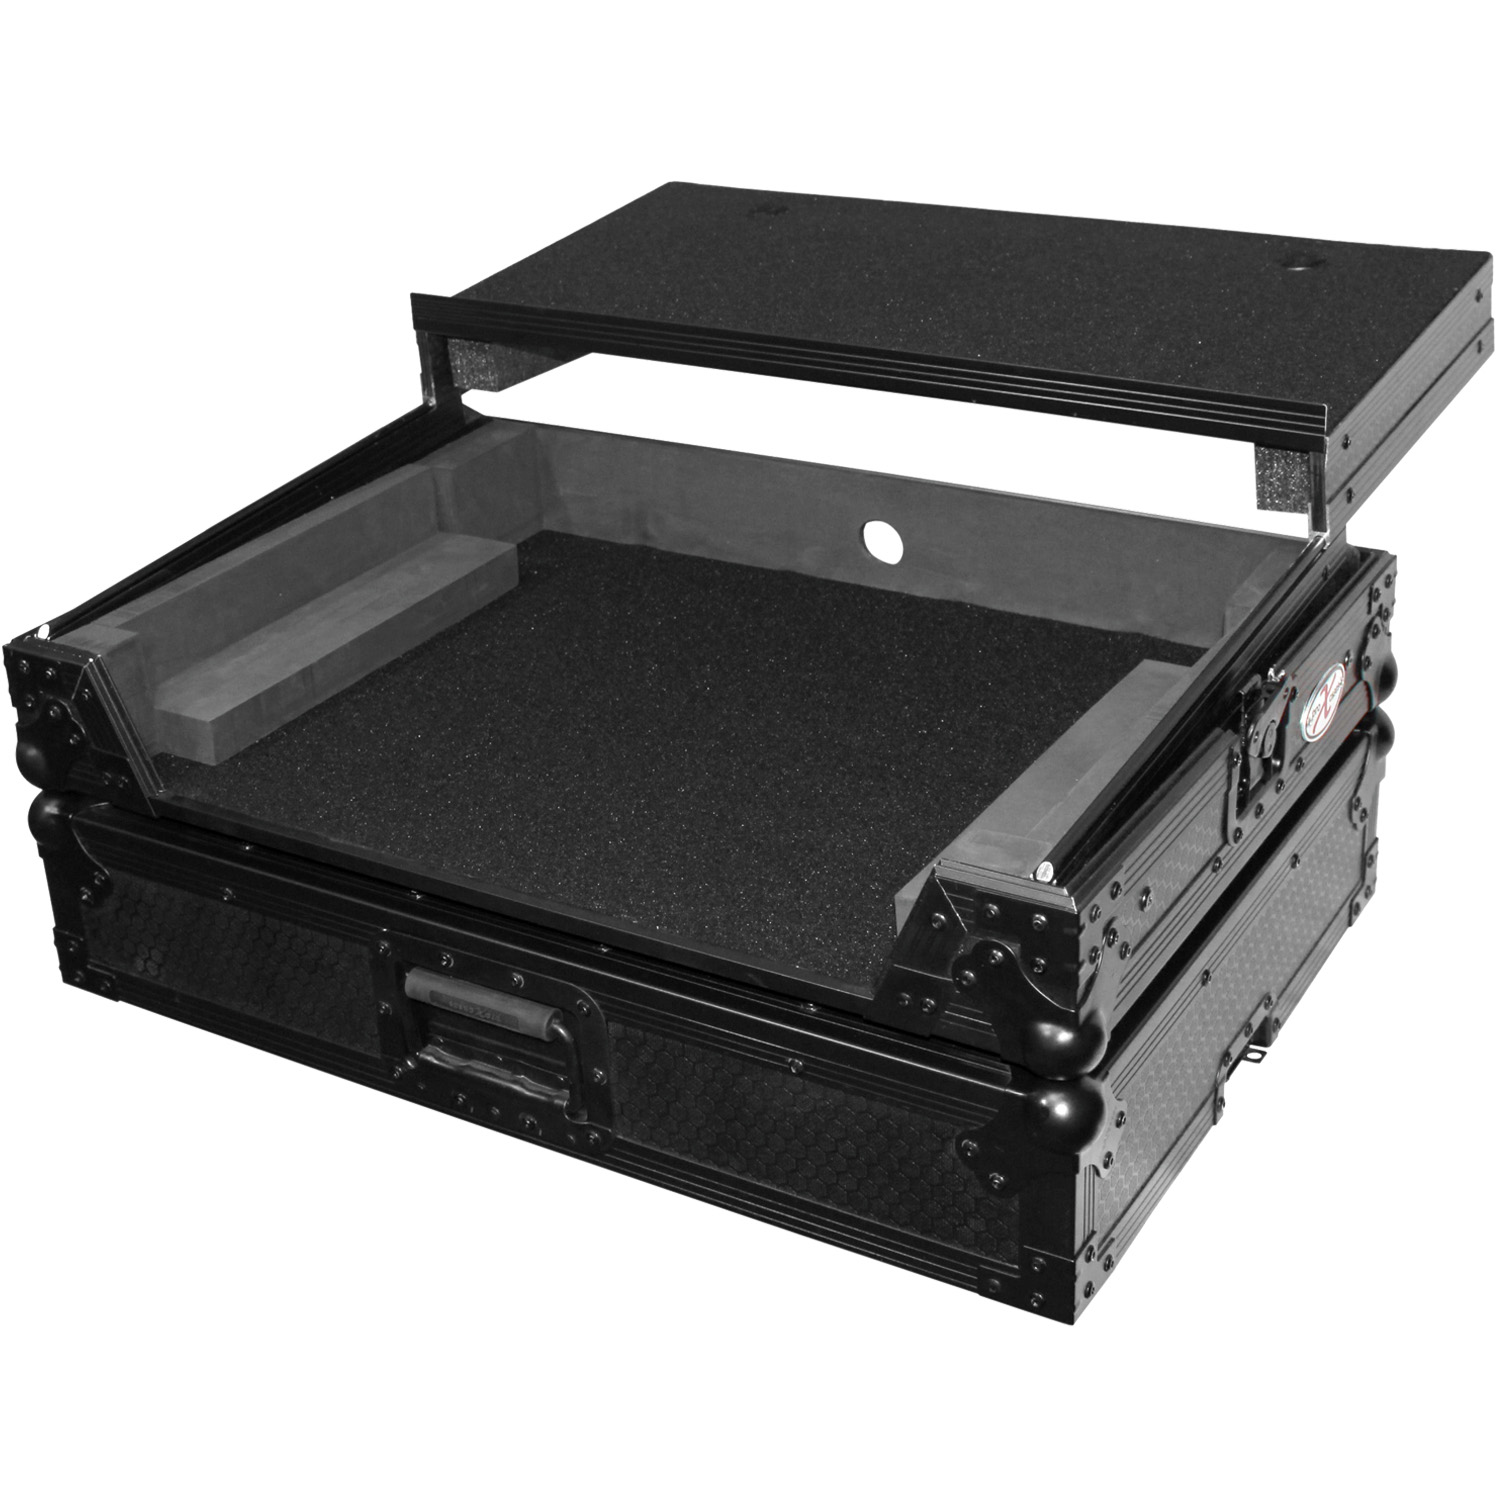 prox-xs-dnmc3000ltbl-denon-dn-mc3000-digital-controller-flight-case-w-laptop-shelf-black-on-black.jpg